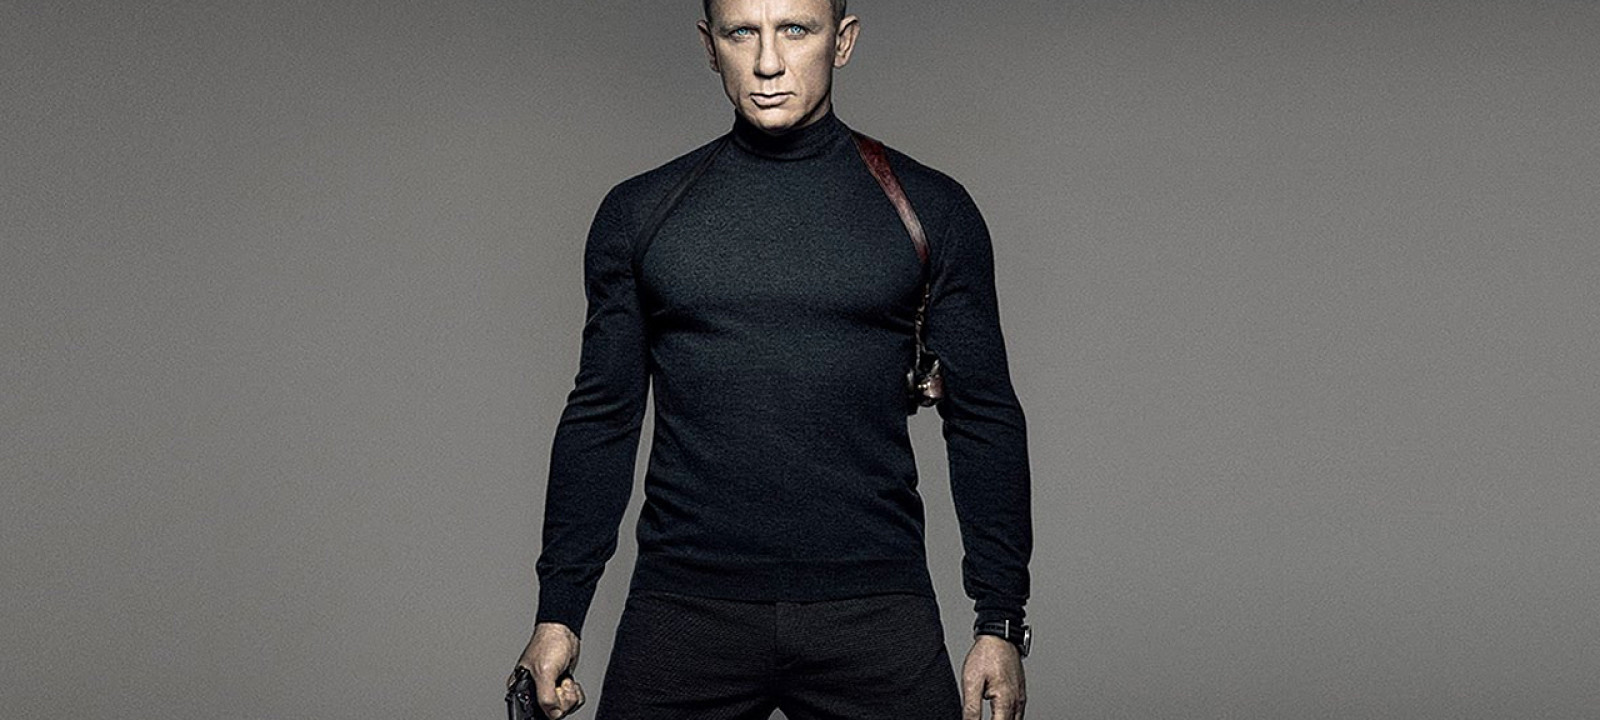 Daniel Craig as James Bond (Pic: MGM/Columbia Pictures)